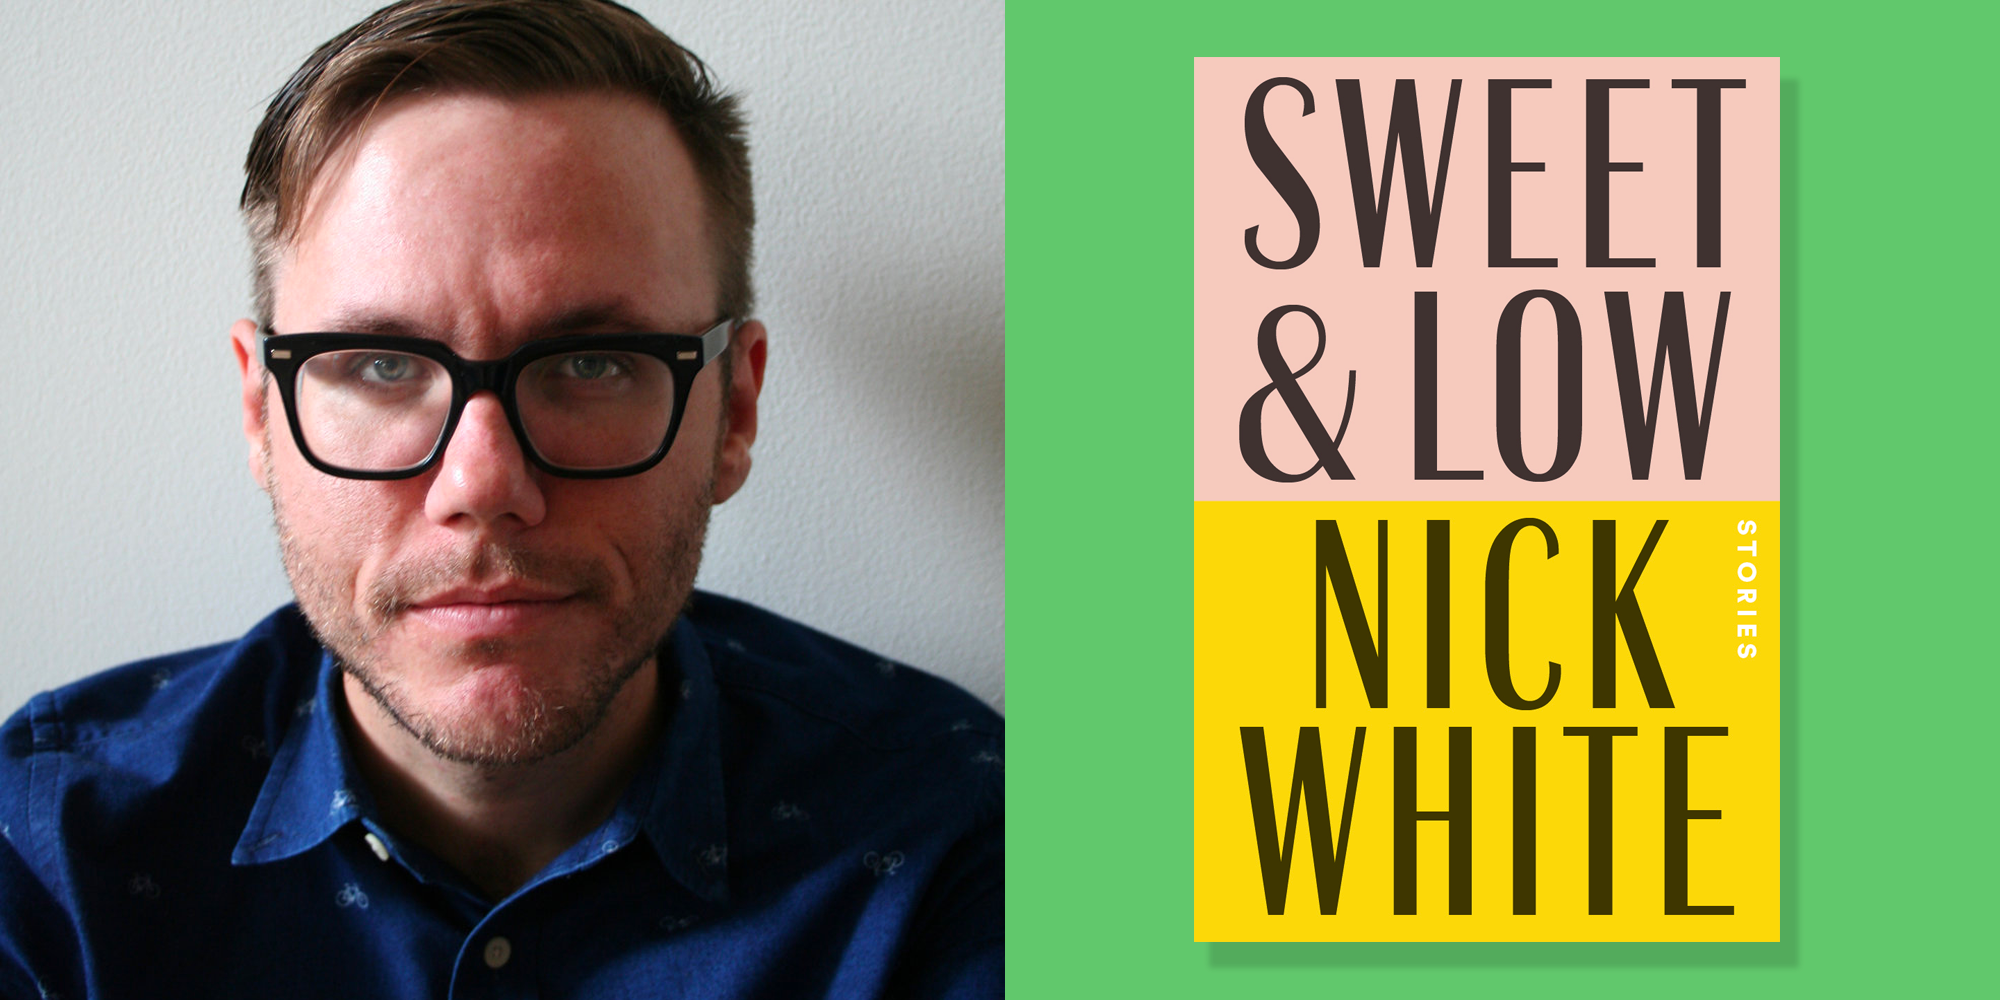 What Propelled Sweet and Low Author Nick White to Finally Come Out to His Parents at 30